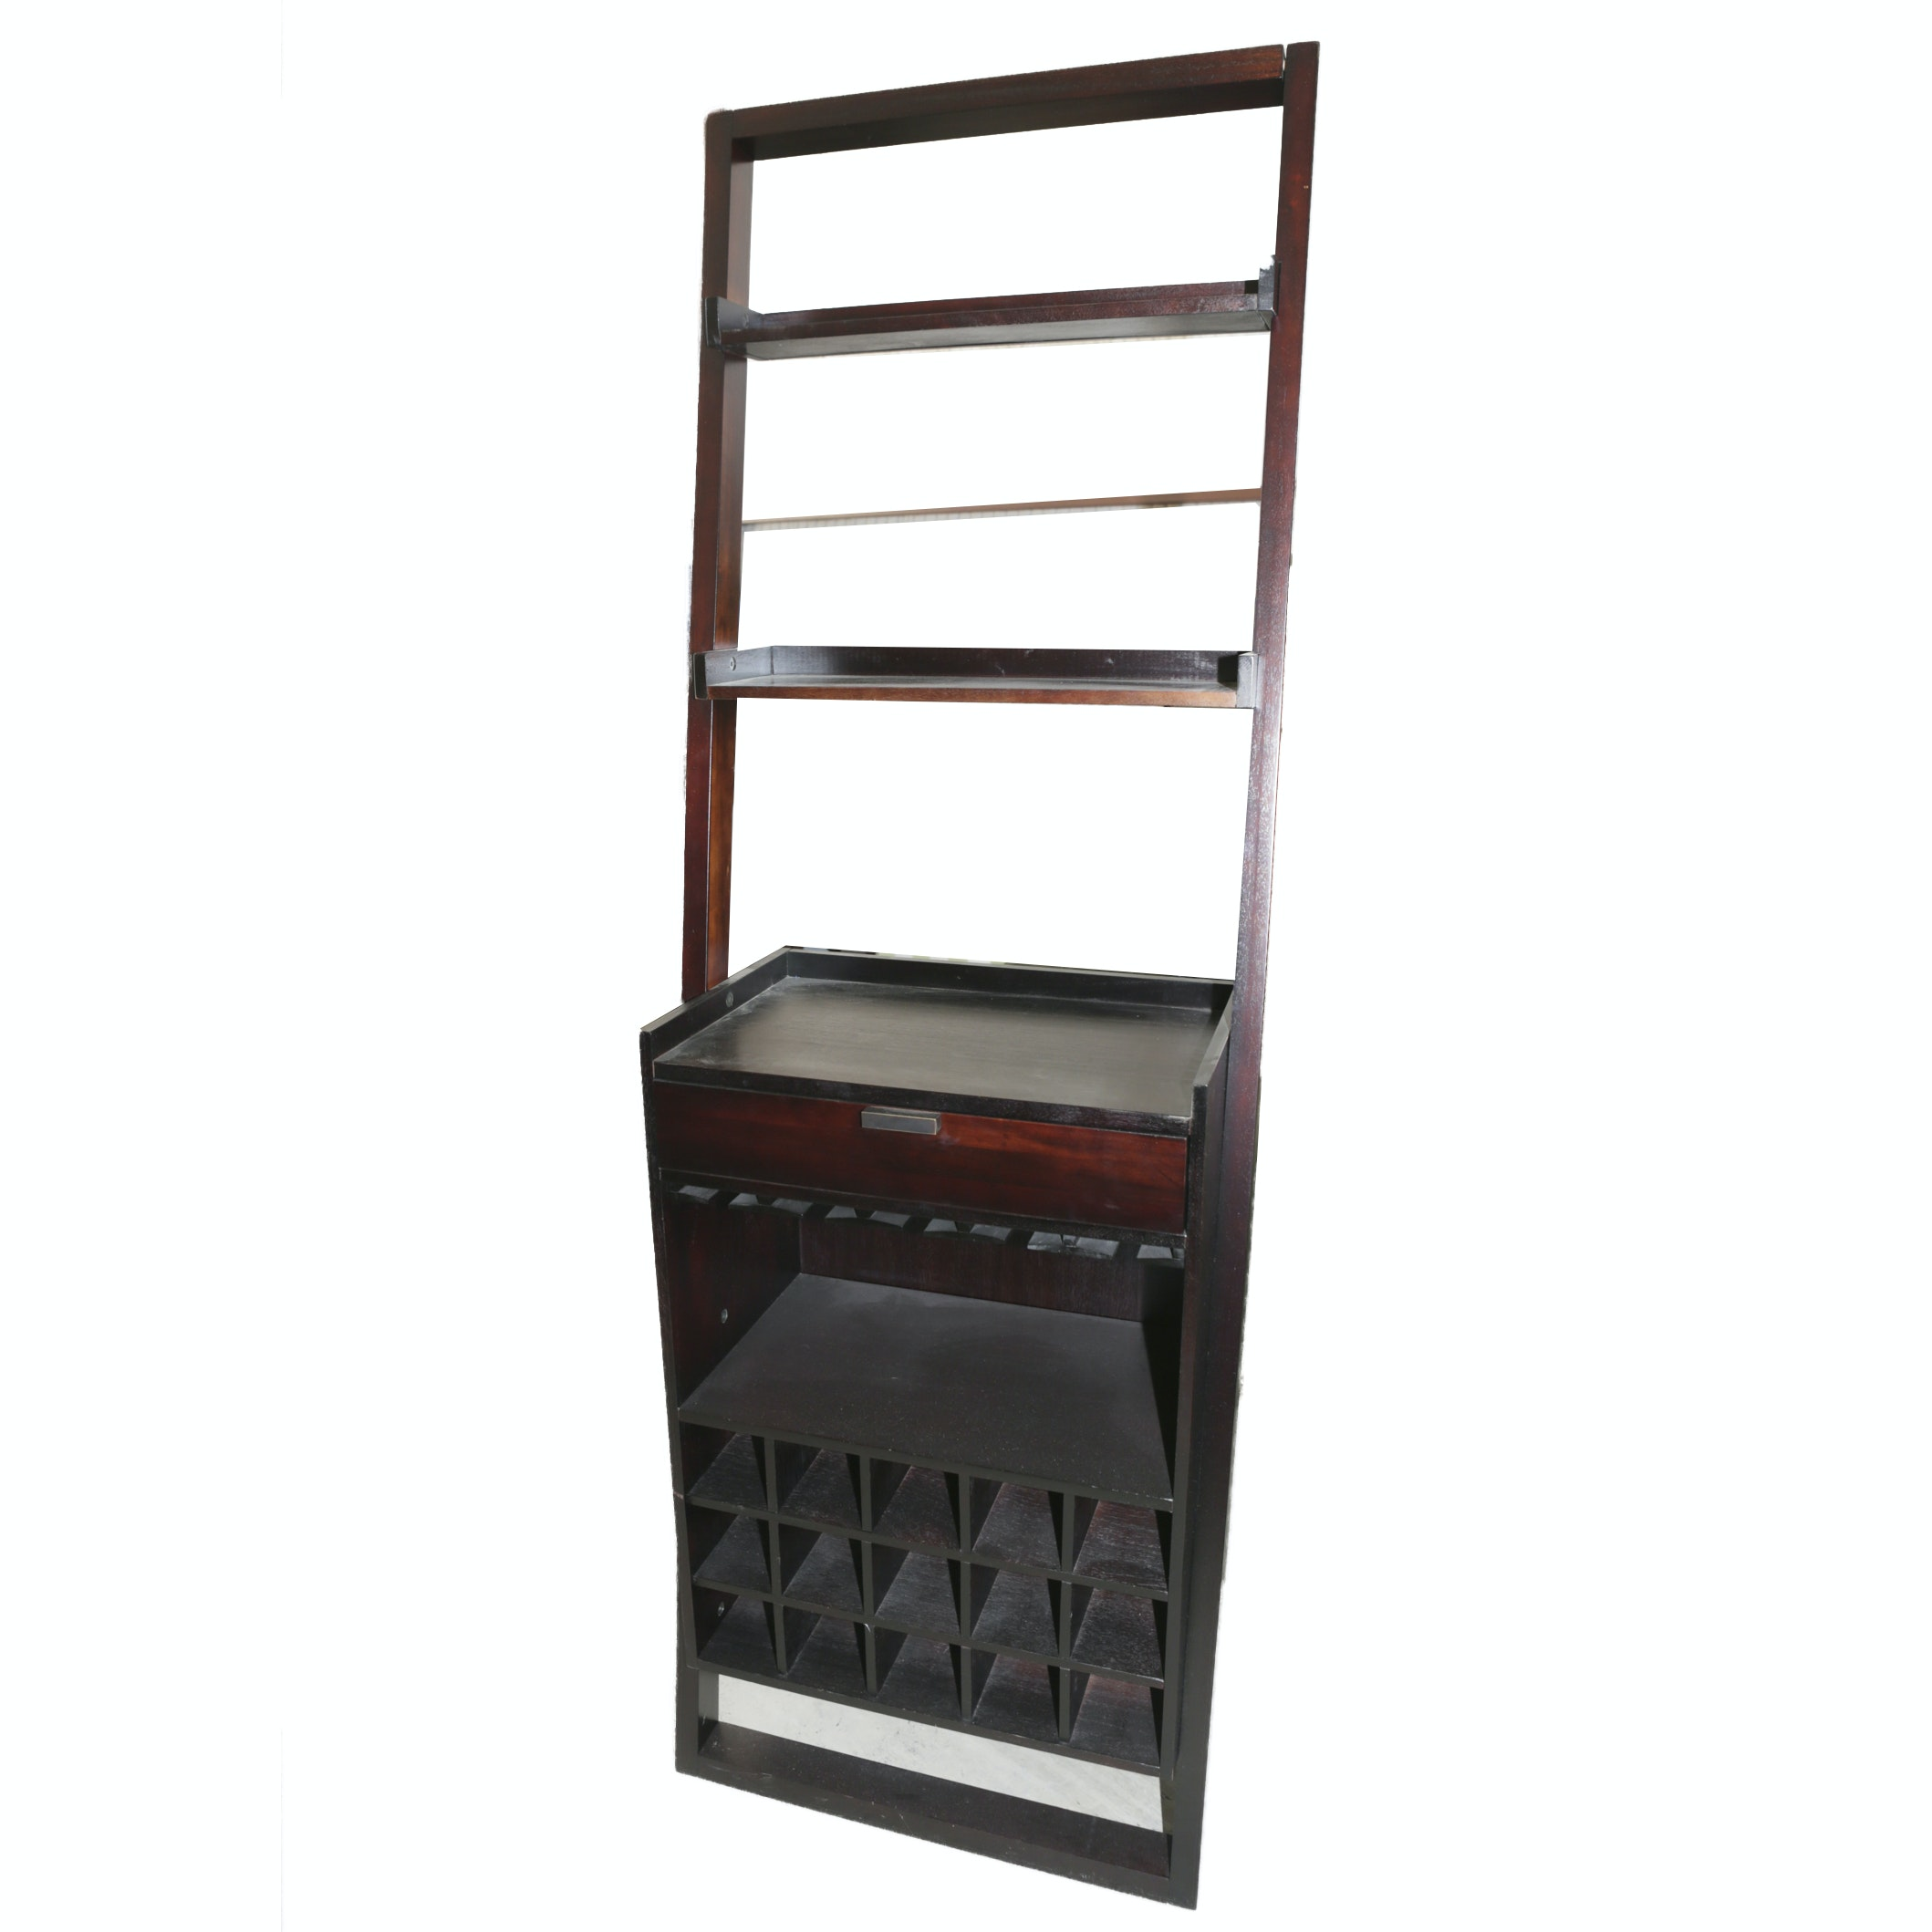 Wall Bar with Shelving and Wine Bottle Storage